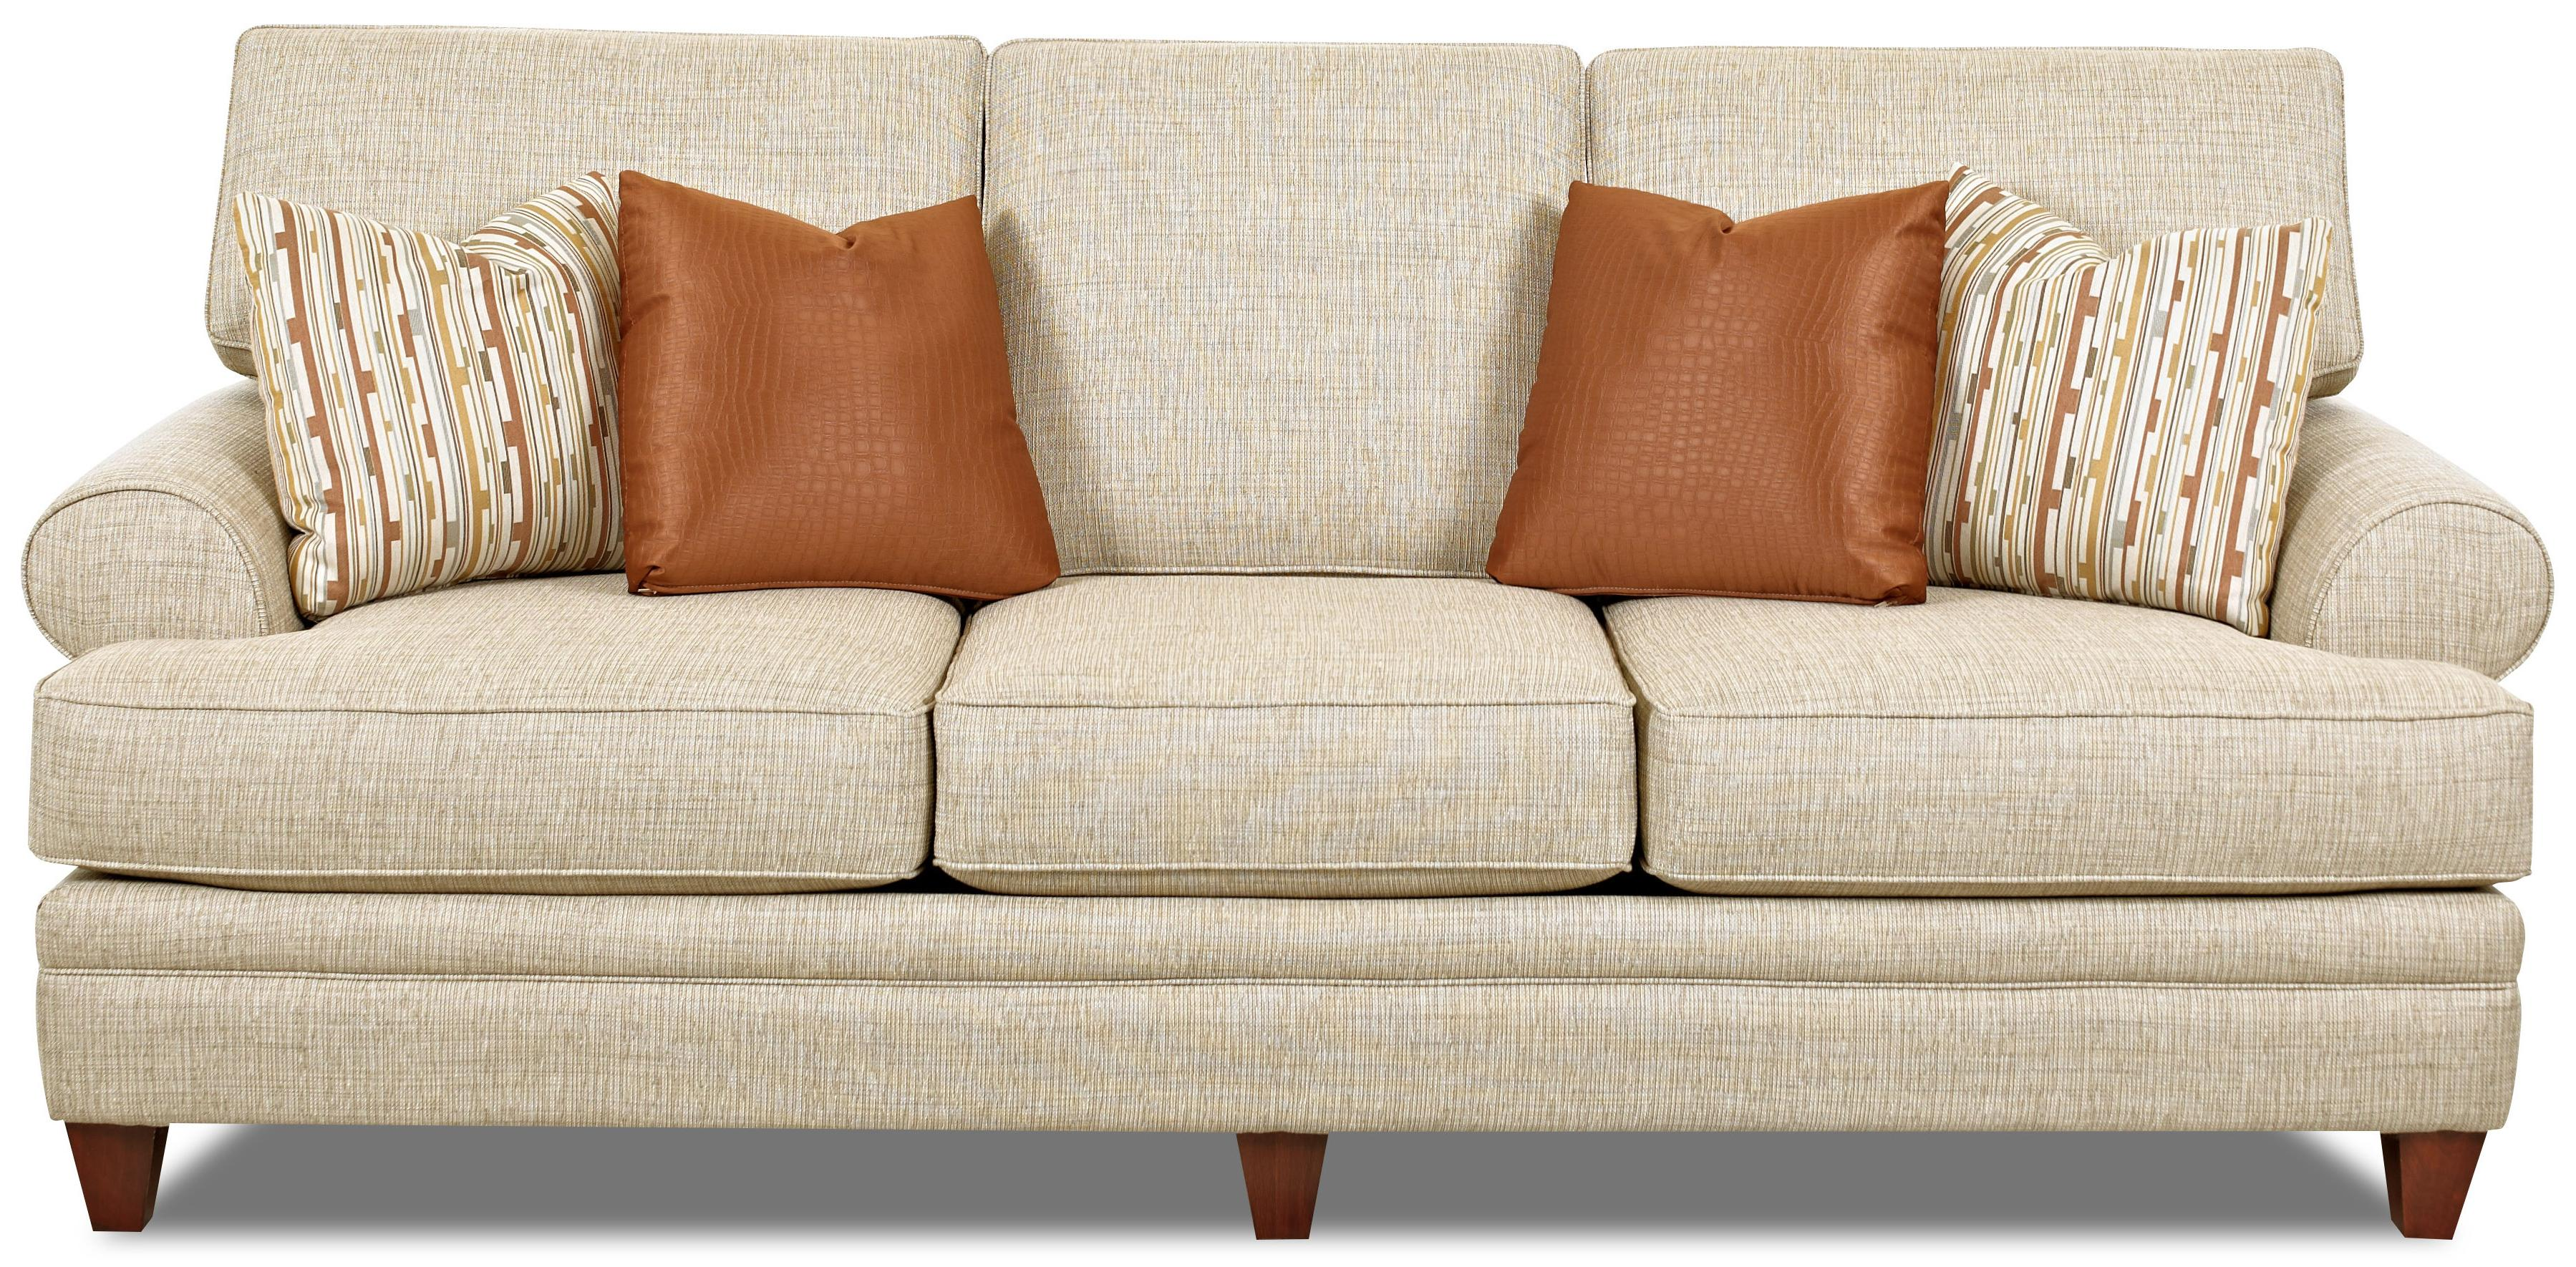 low profile sofa. Transitional Sofa With Low Profile Rolled Arms